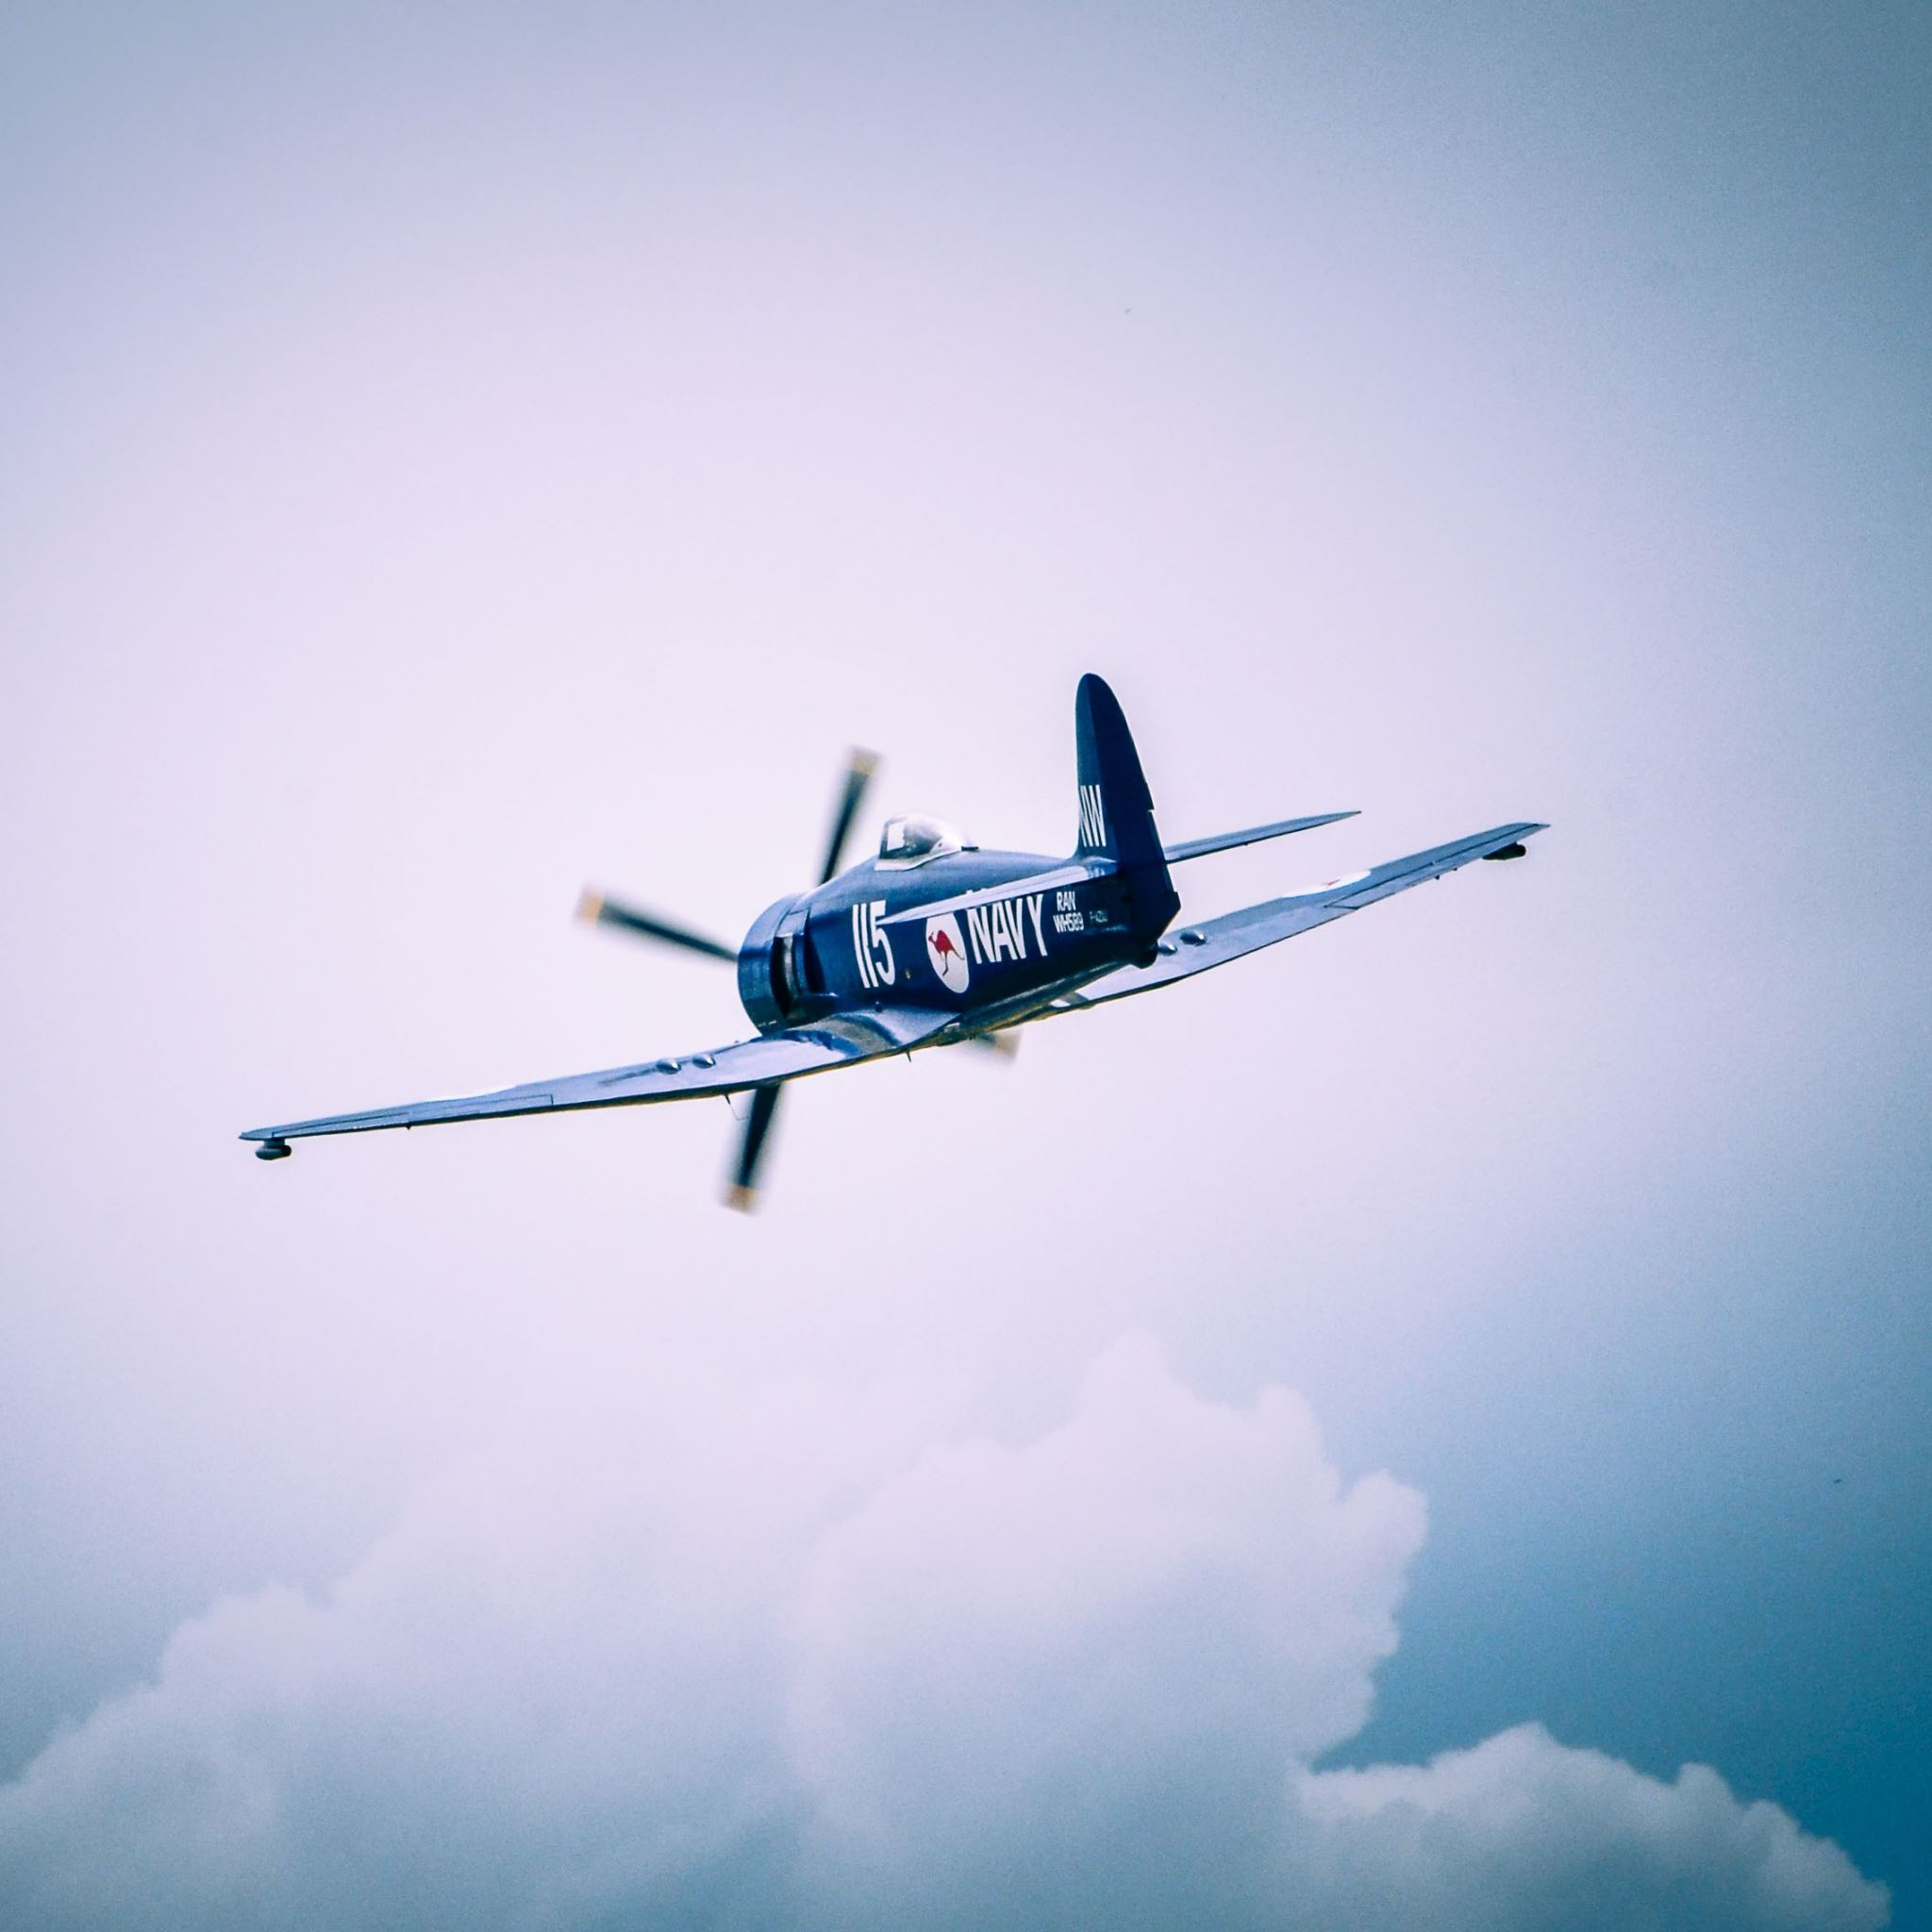 Airplane Flying Sky Clouds iPad Air wallpaper